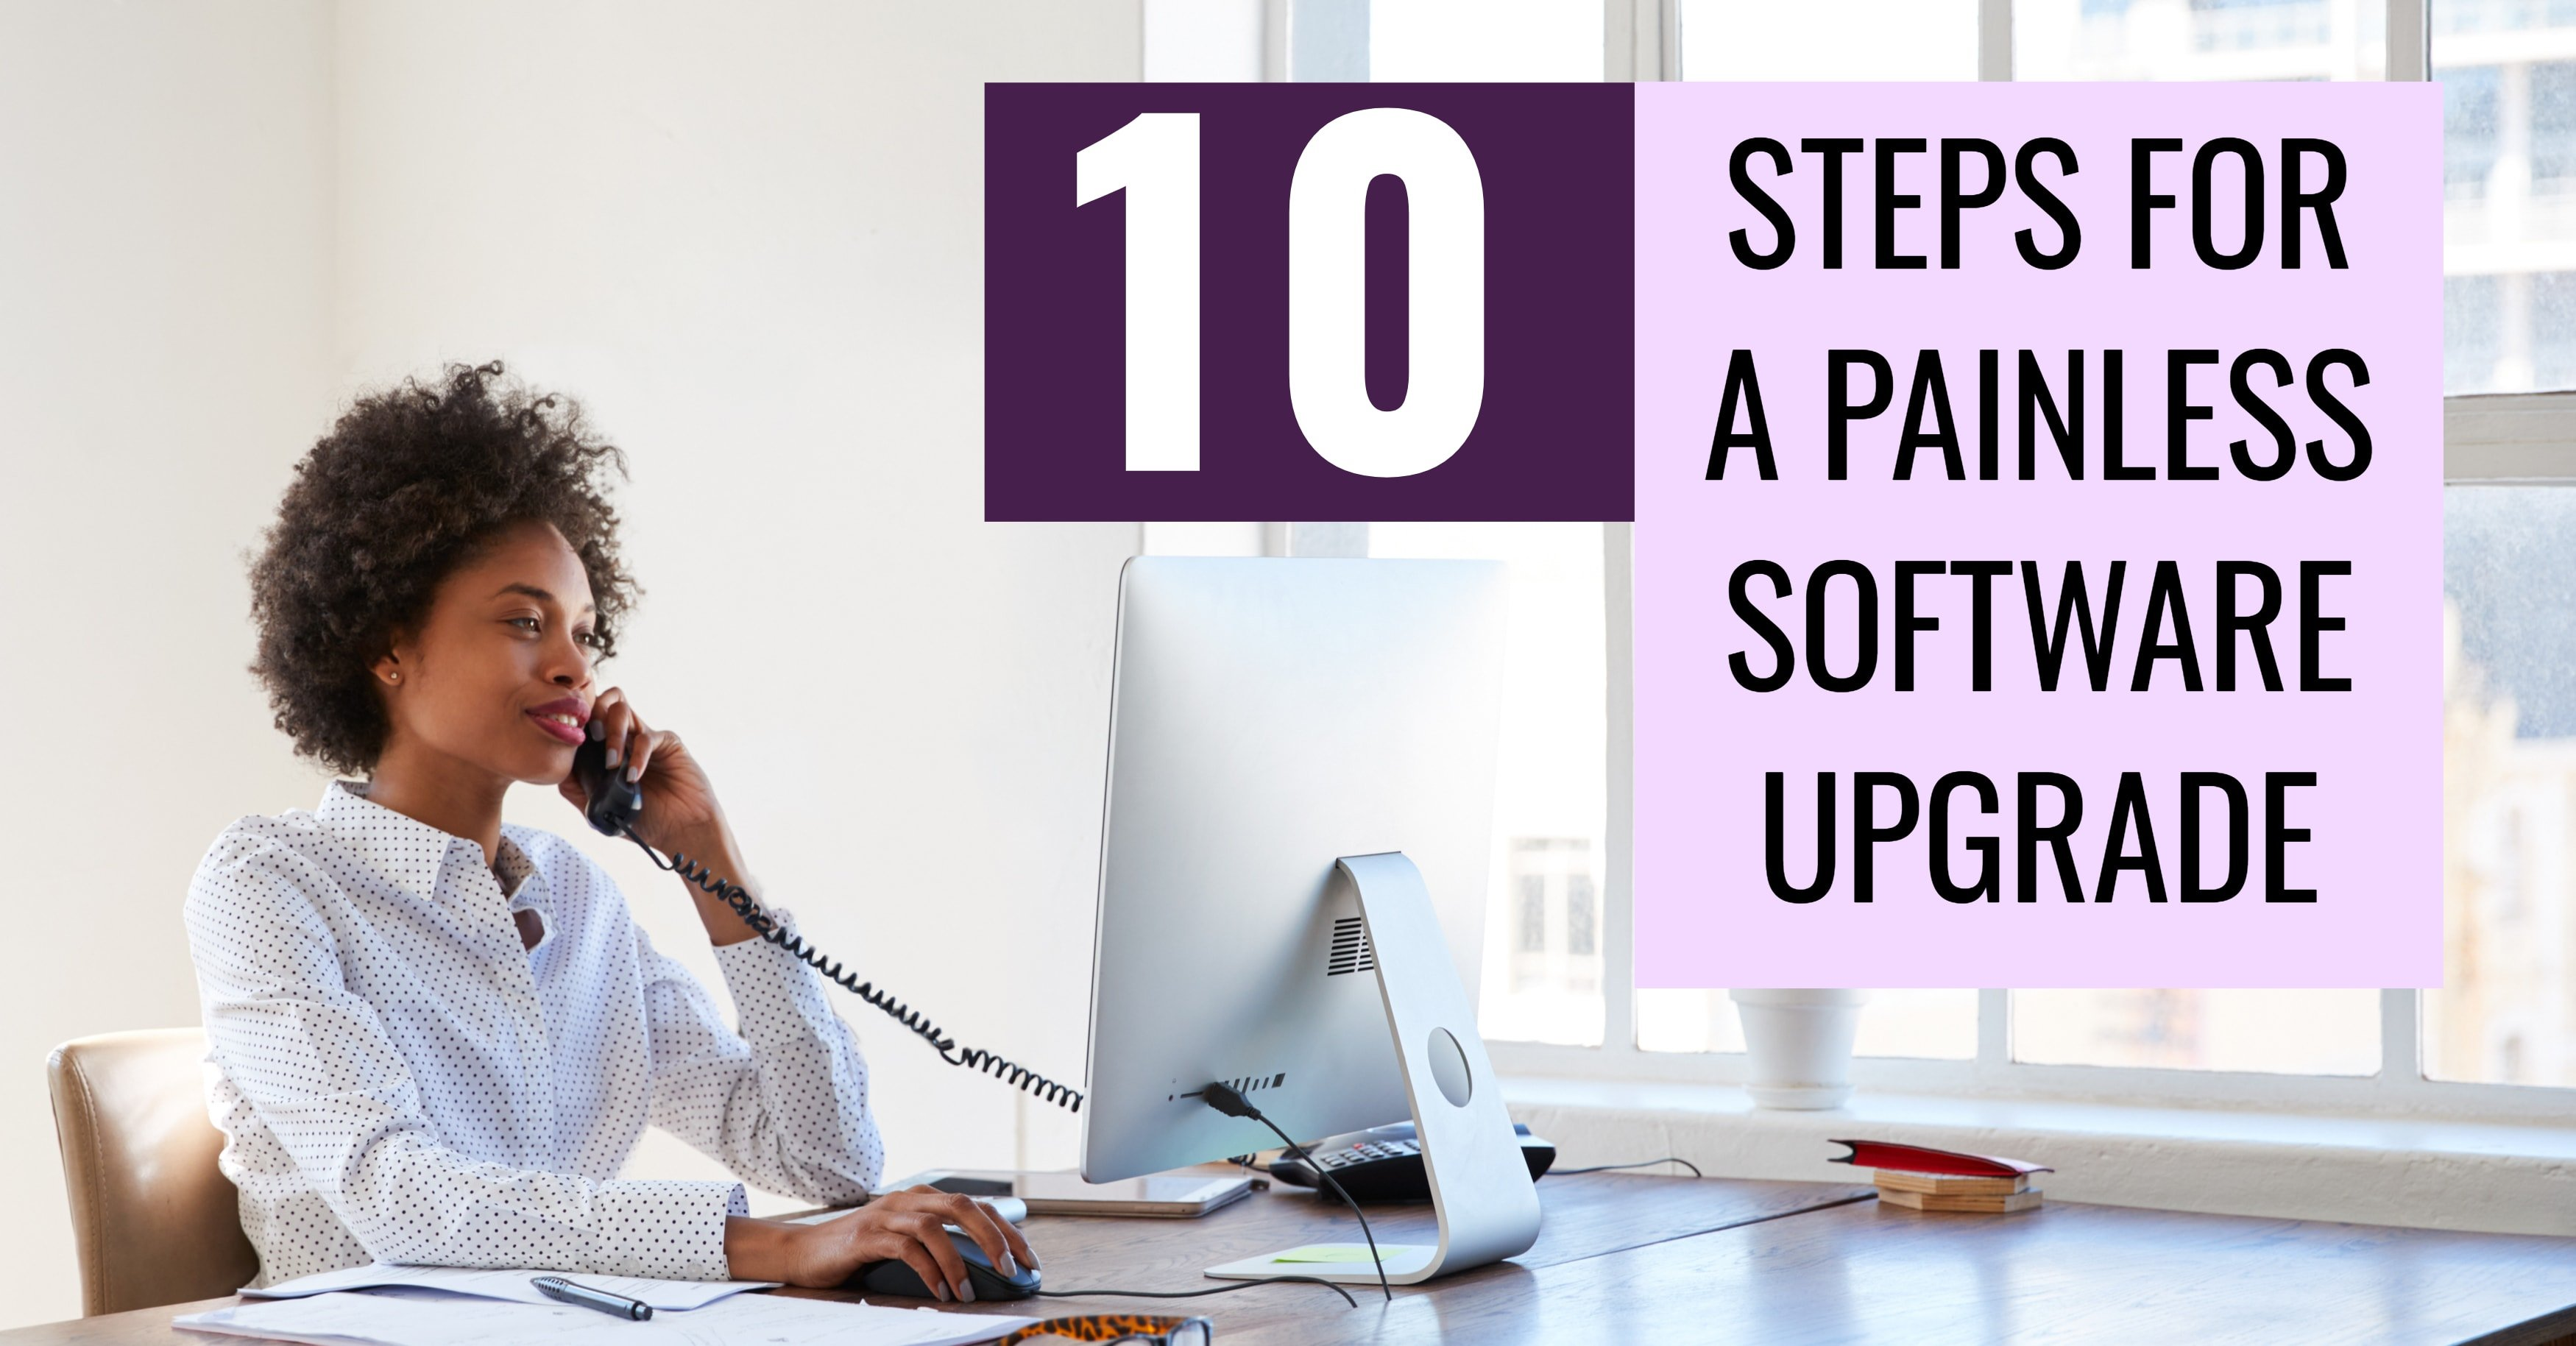 10 Steps for a Painless Software Upgrade